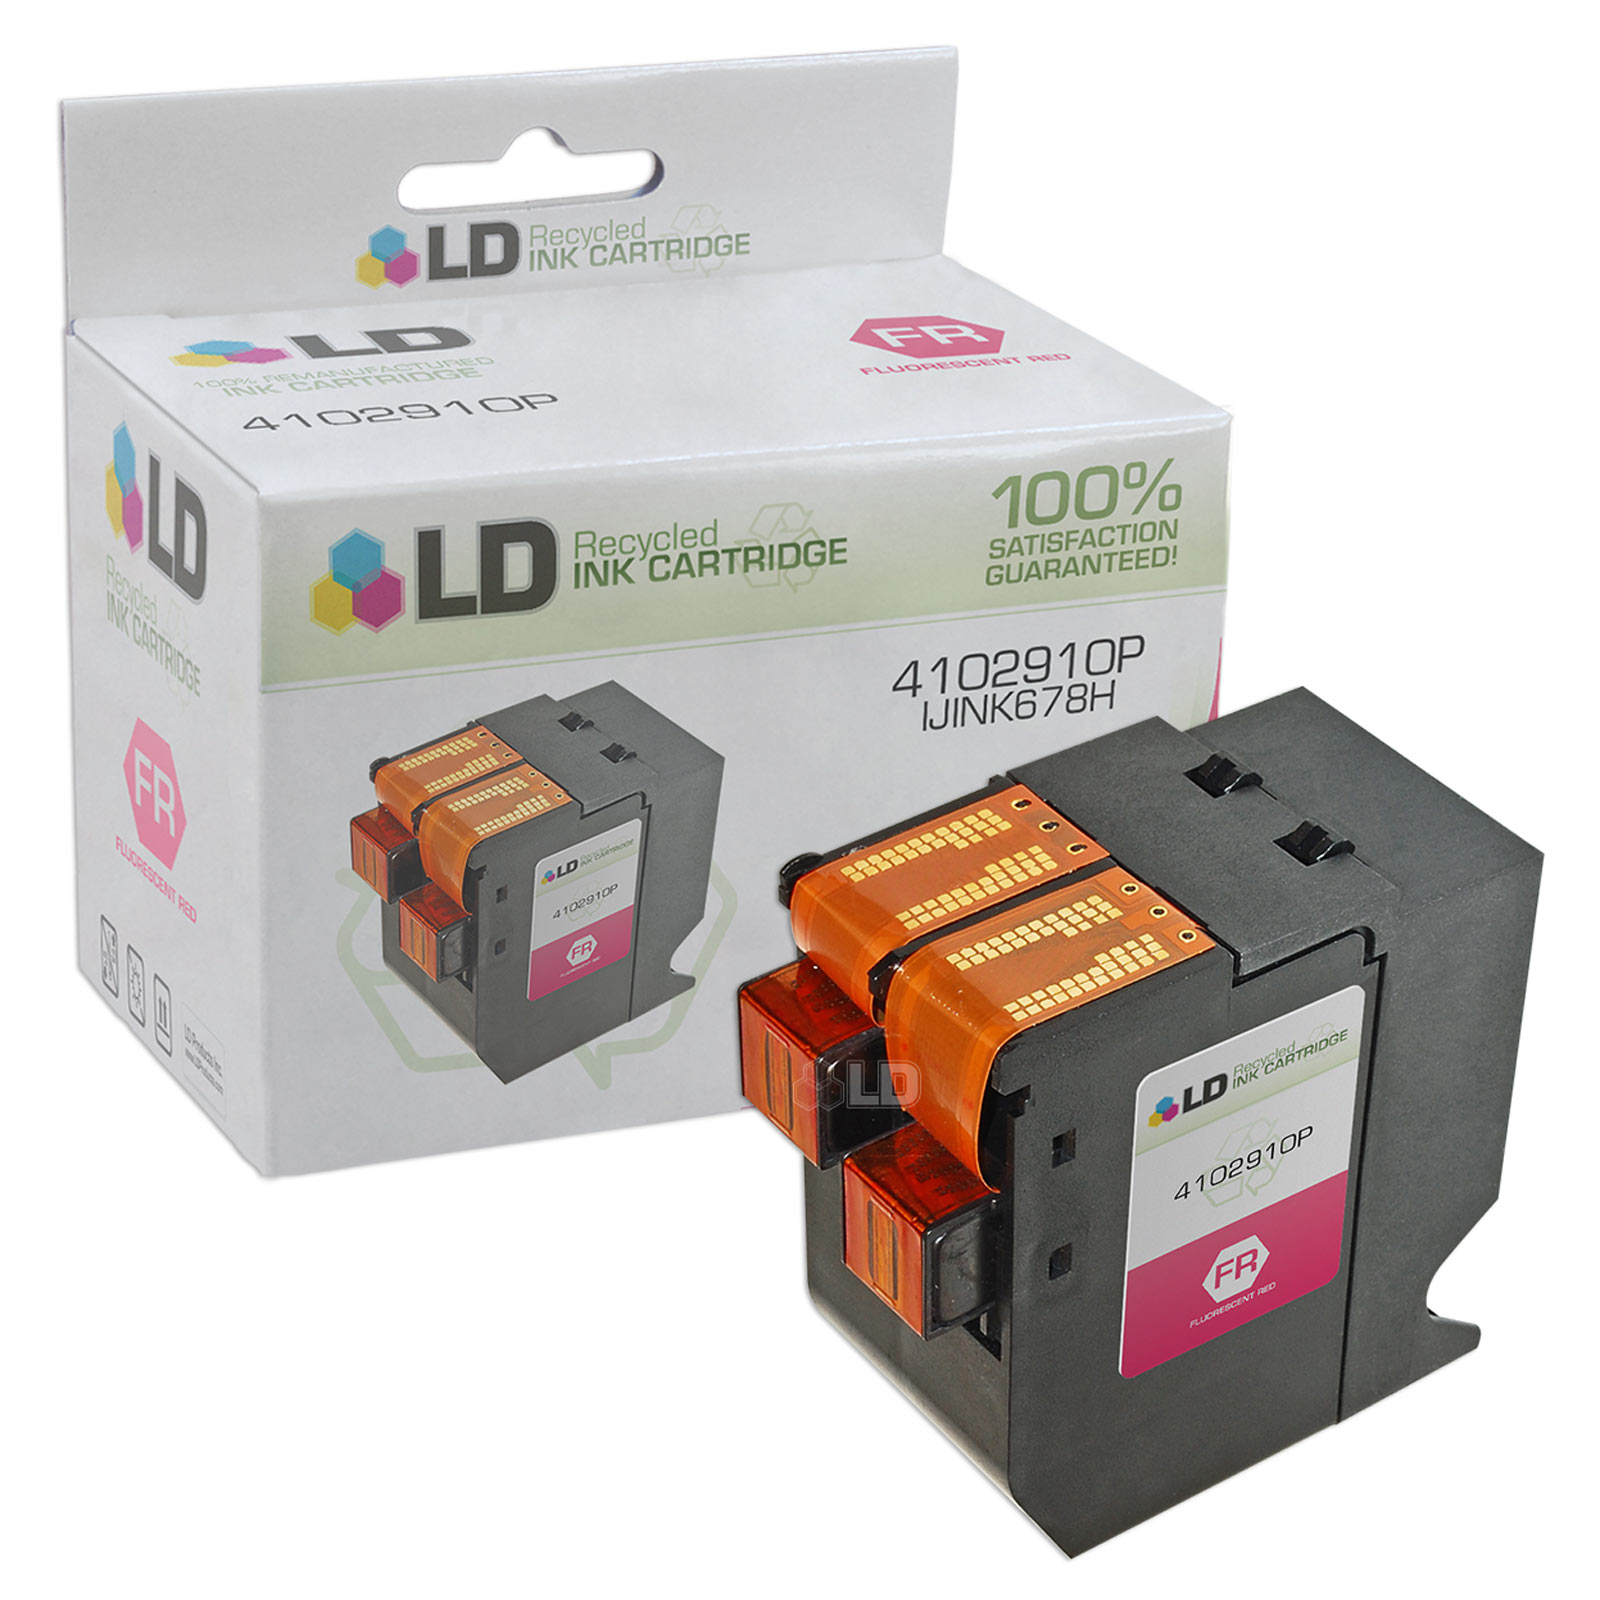 LD Remanufactured Replacement for NeoPost IJINK678H / 4102910P Fluorescent Red Inkjet Cartridge for use in NeoPost IJ65,